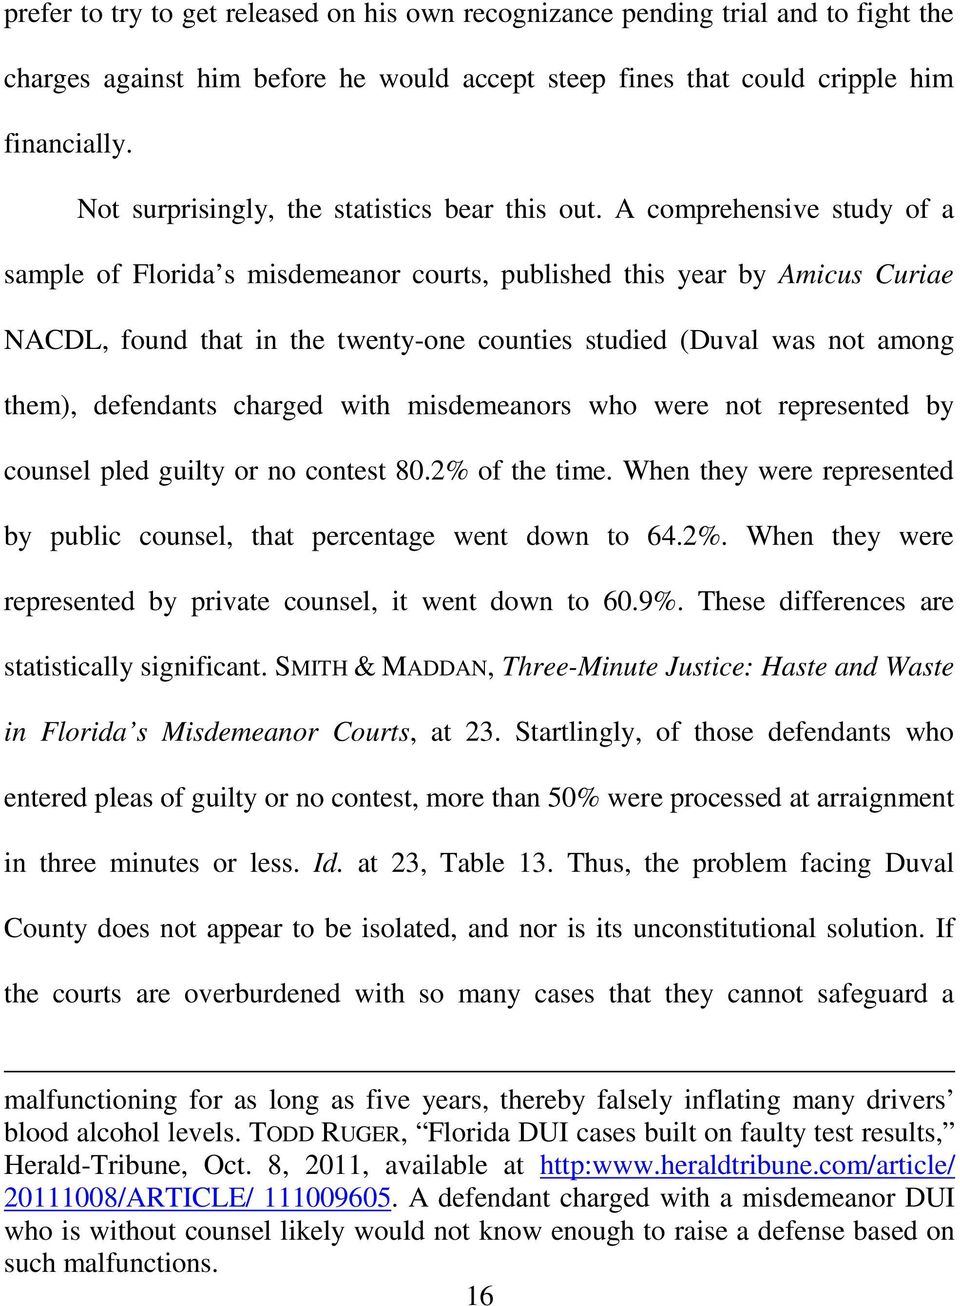 A comprehensive study of a sample of Florida s misdemeanor courts, published this year by Amicus Curiae NACDL, found that in the twenty-one counties studied (Duval was not among them), defendants